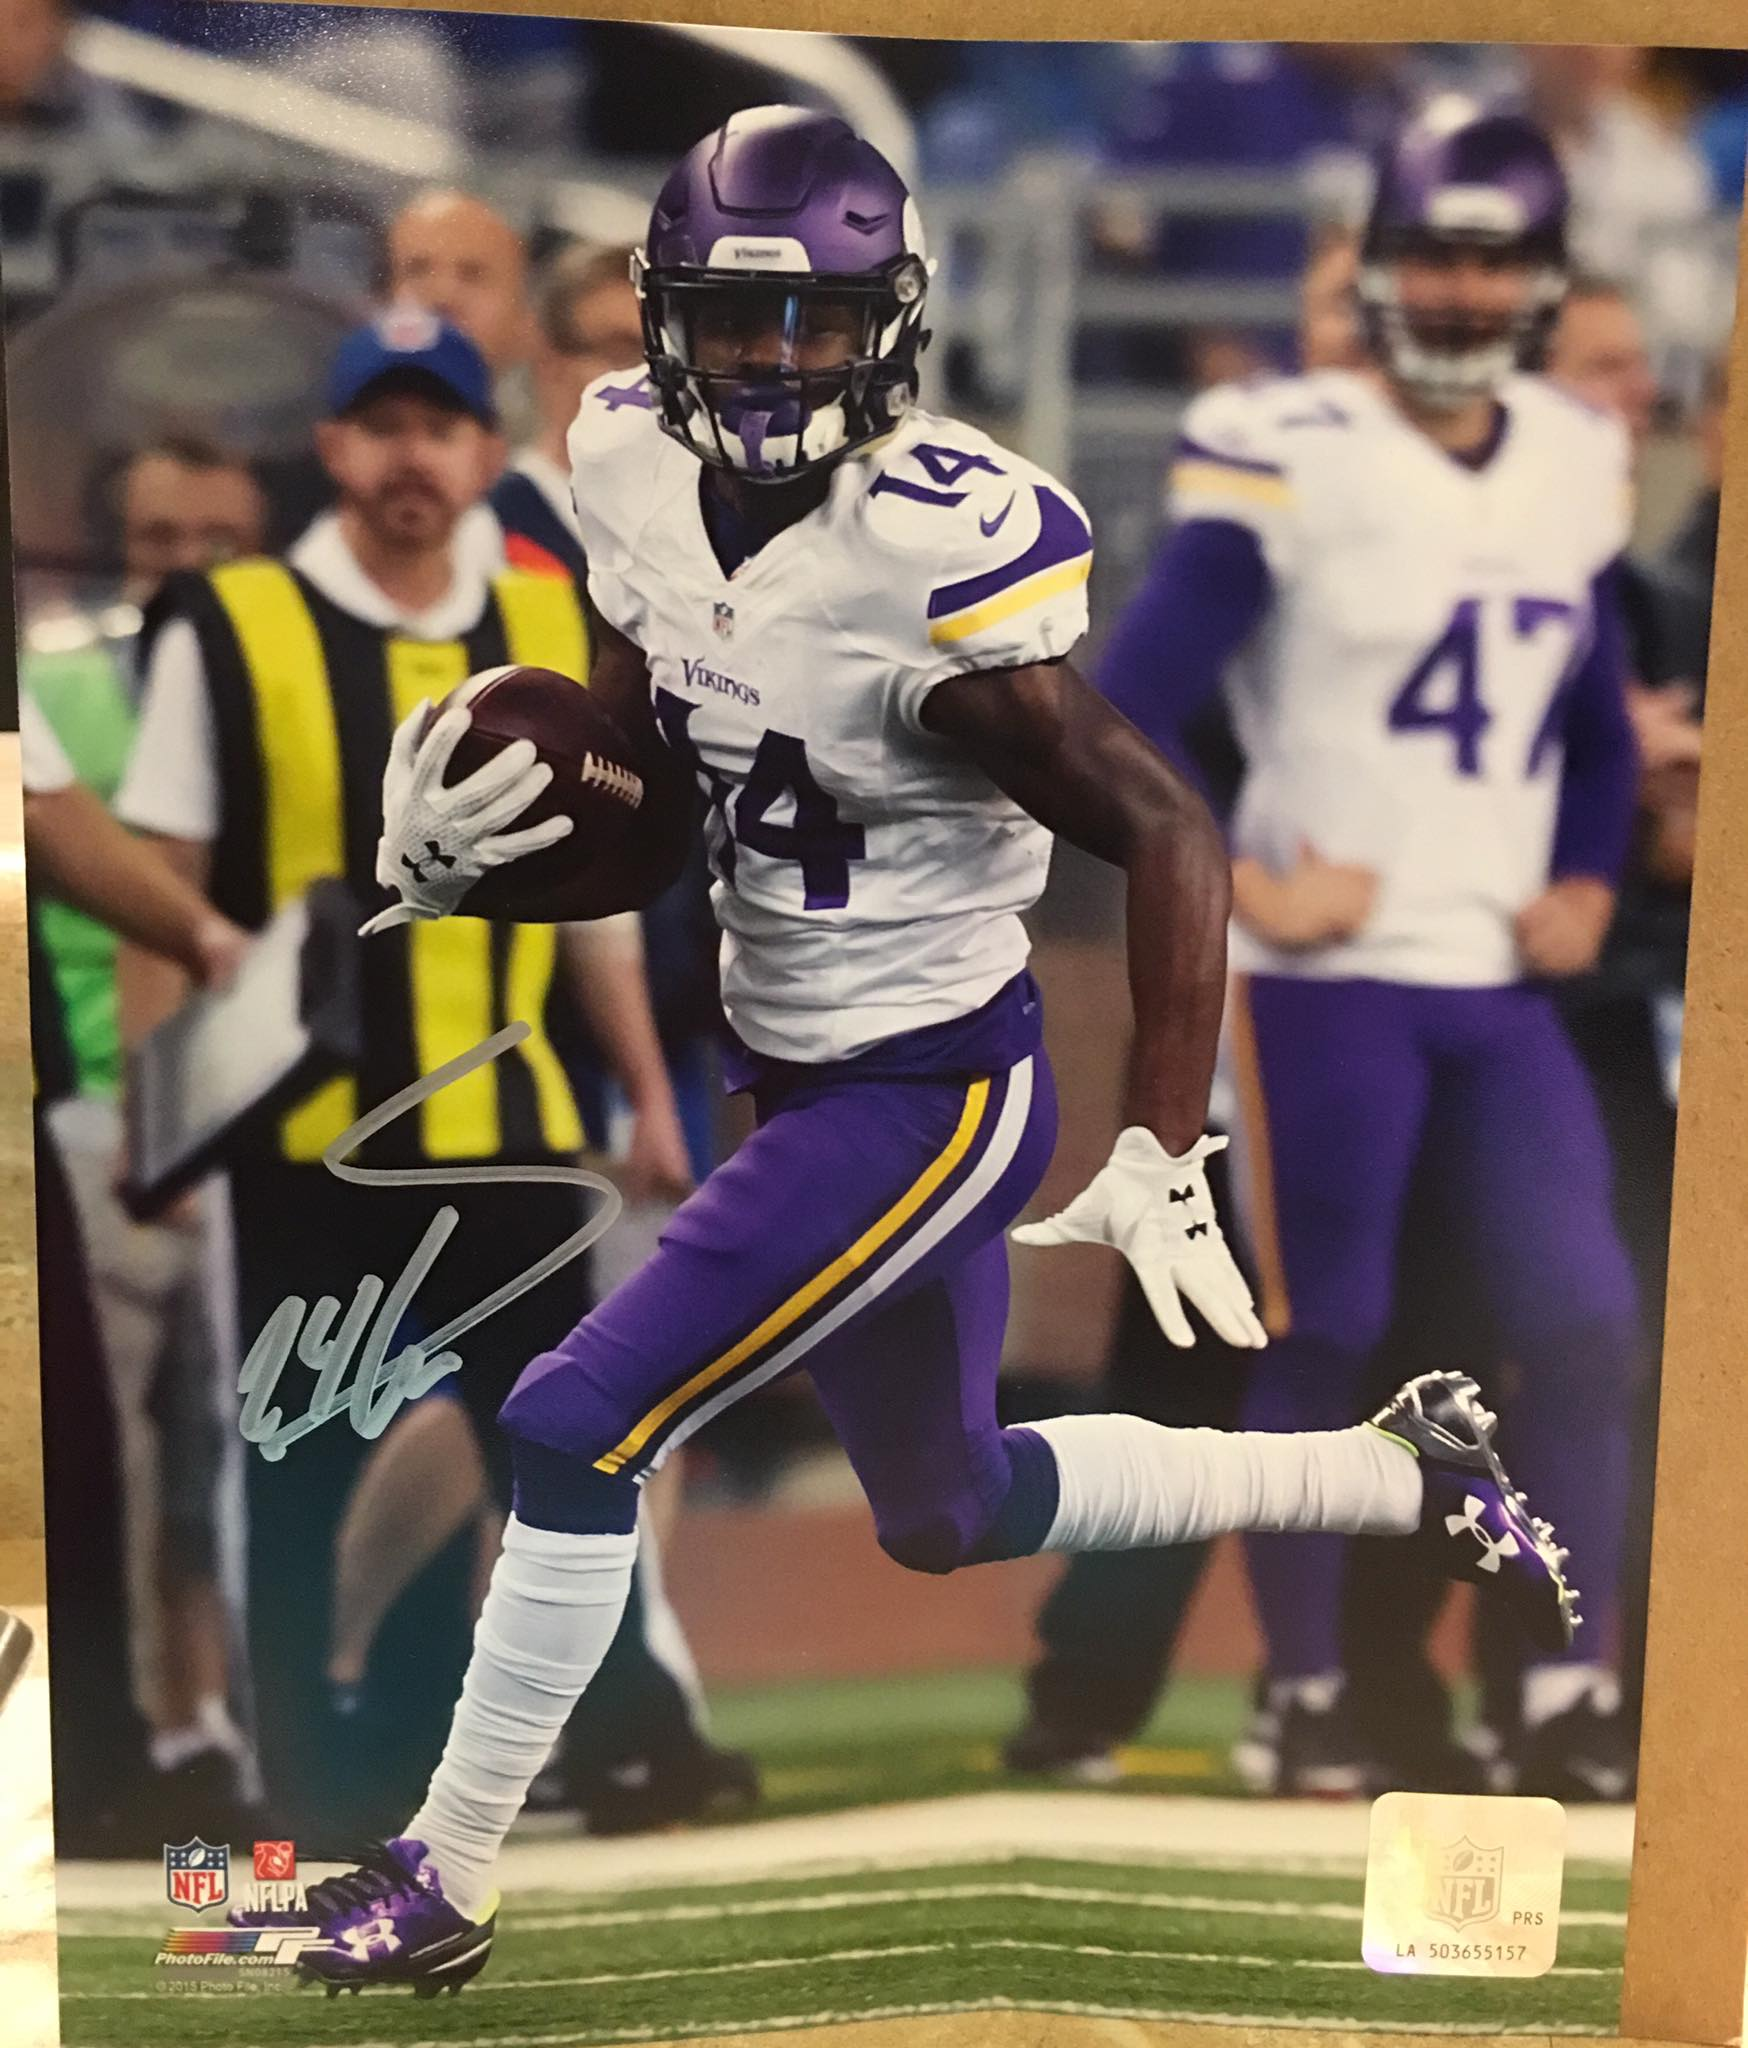 Autographed Photo of Stefon Diggs